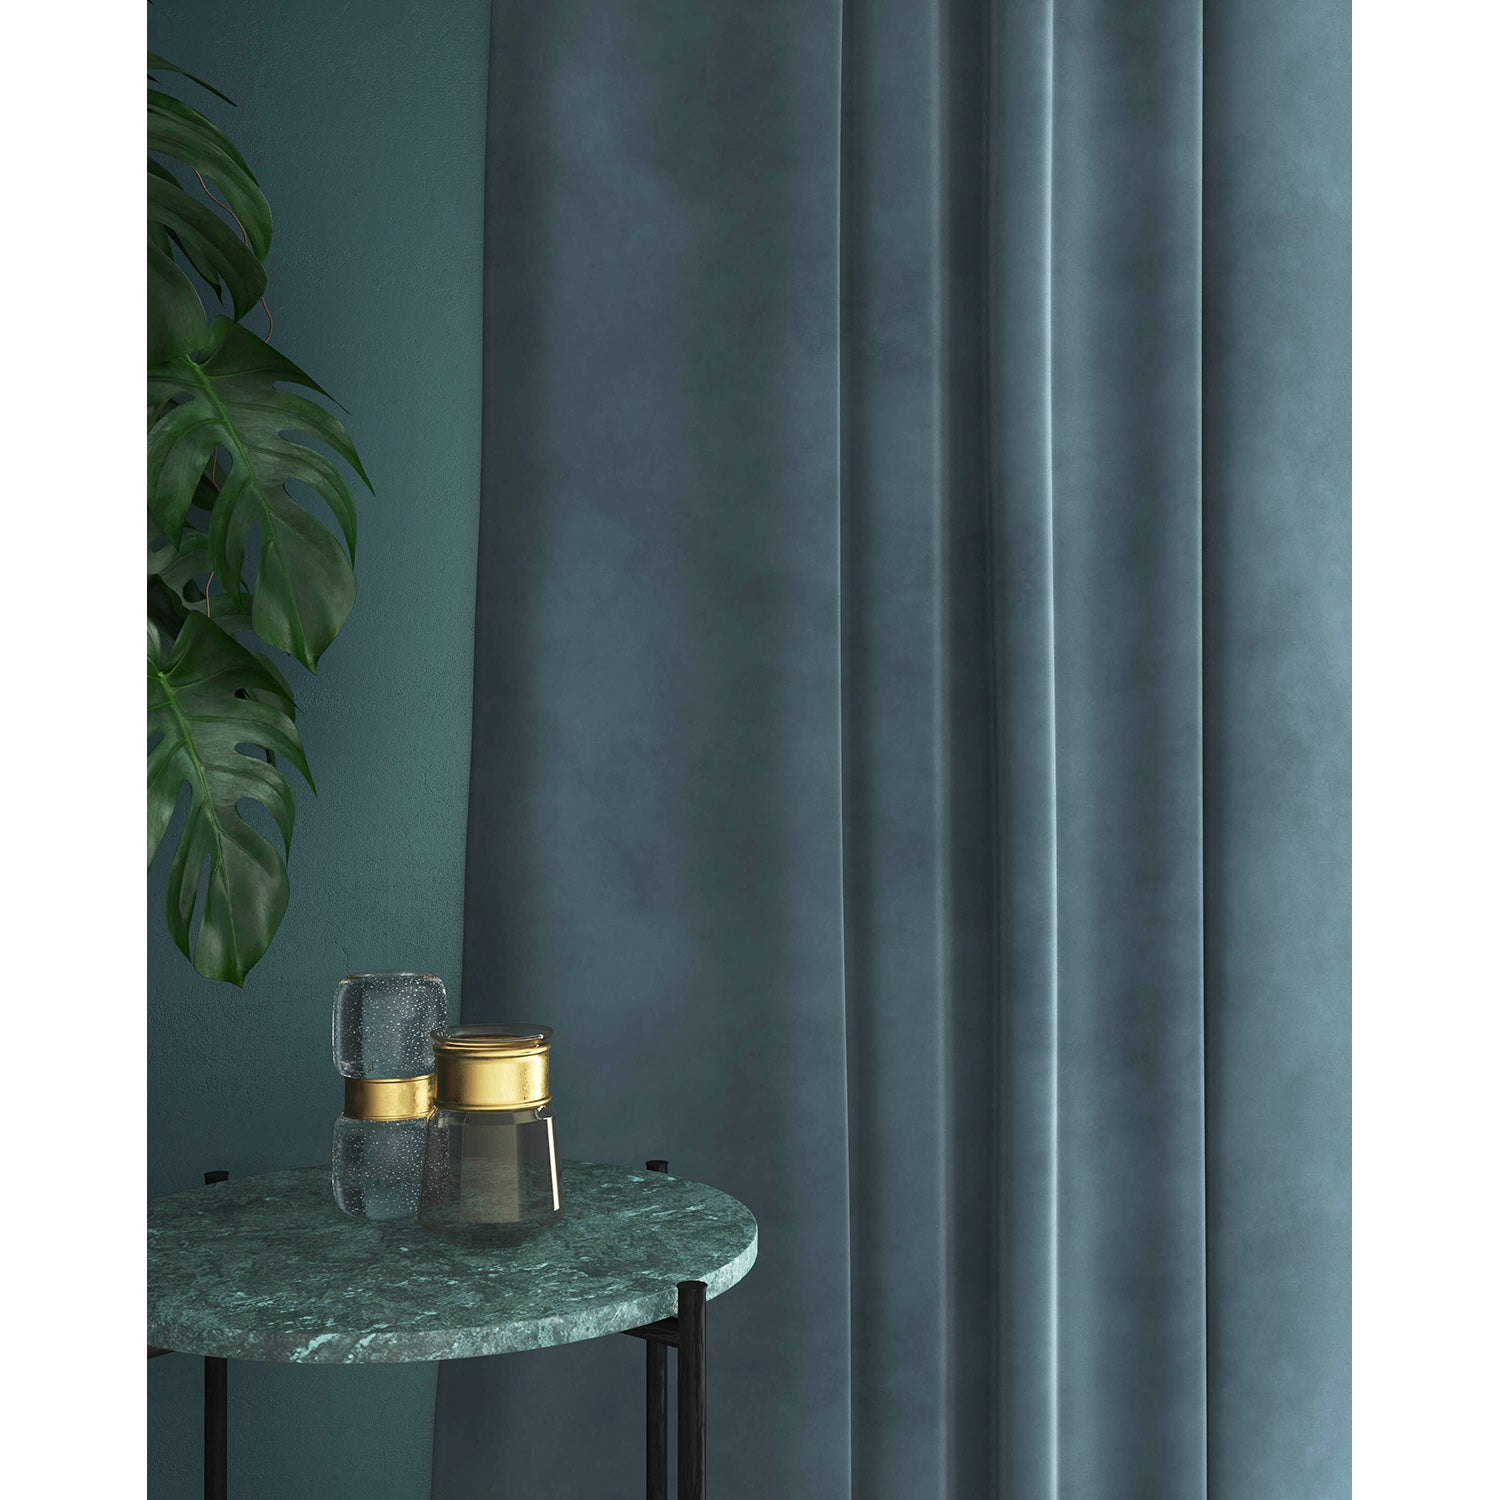 Blue velvet curtains with a stain resistant finish